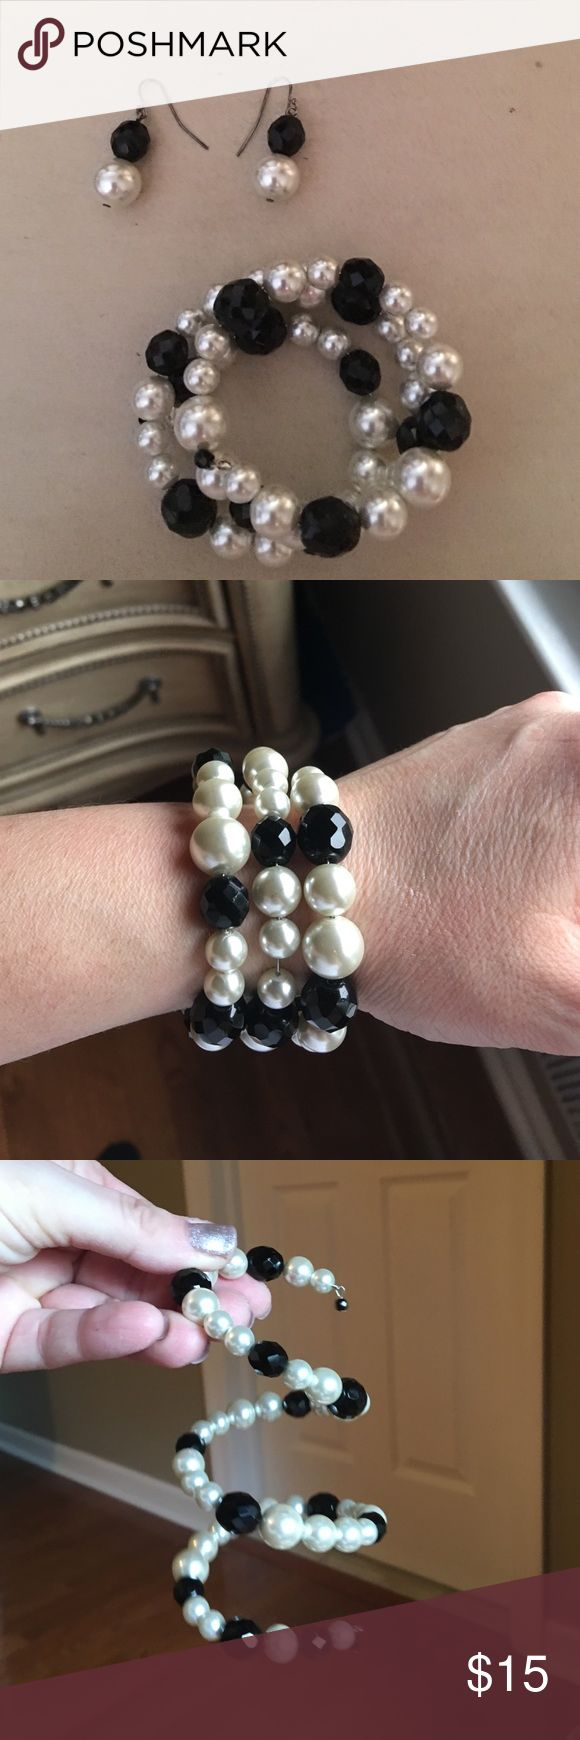 Black and white bracelet with earrings. Costume jewelry black and white pearl elastic wrap around bracelet with matching earrings. Worn once. Jewelry Bracelets